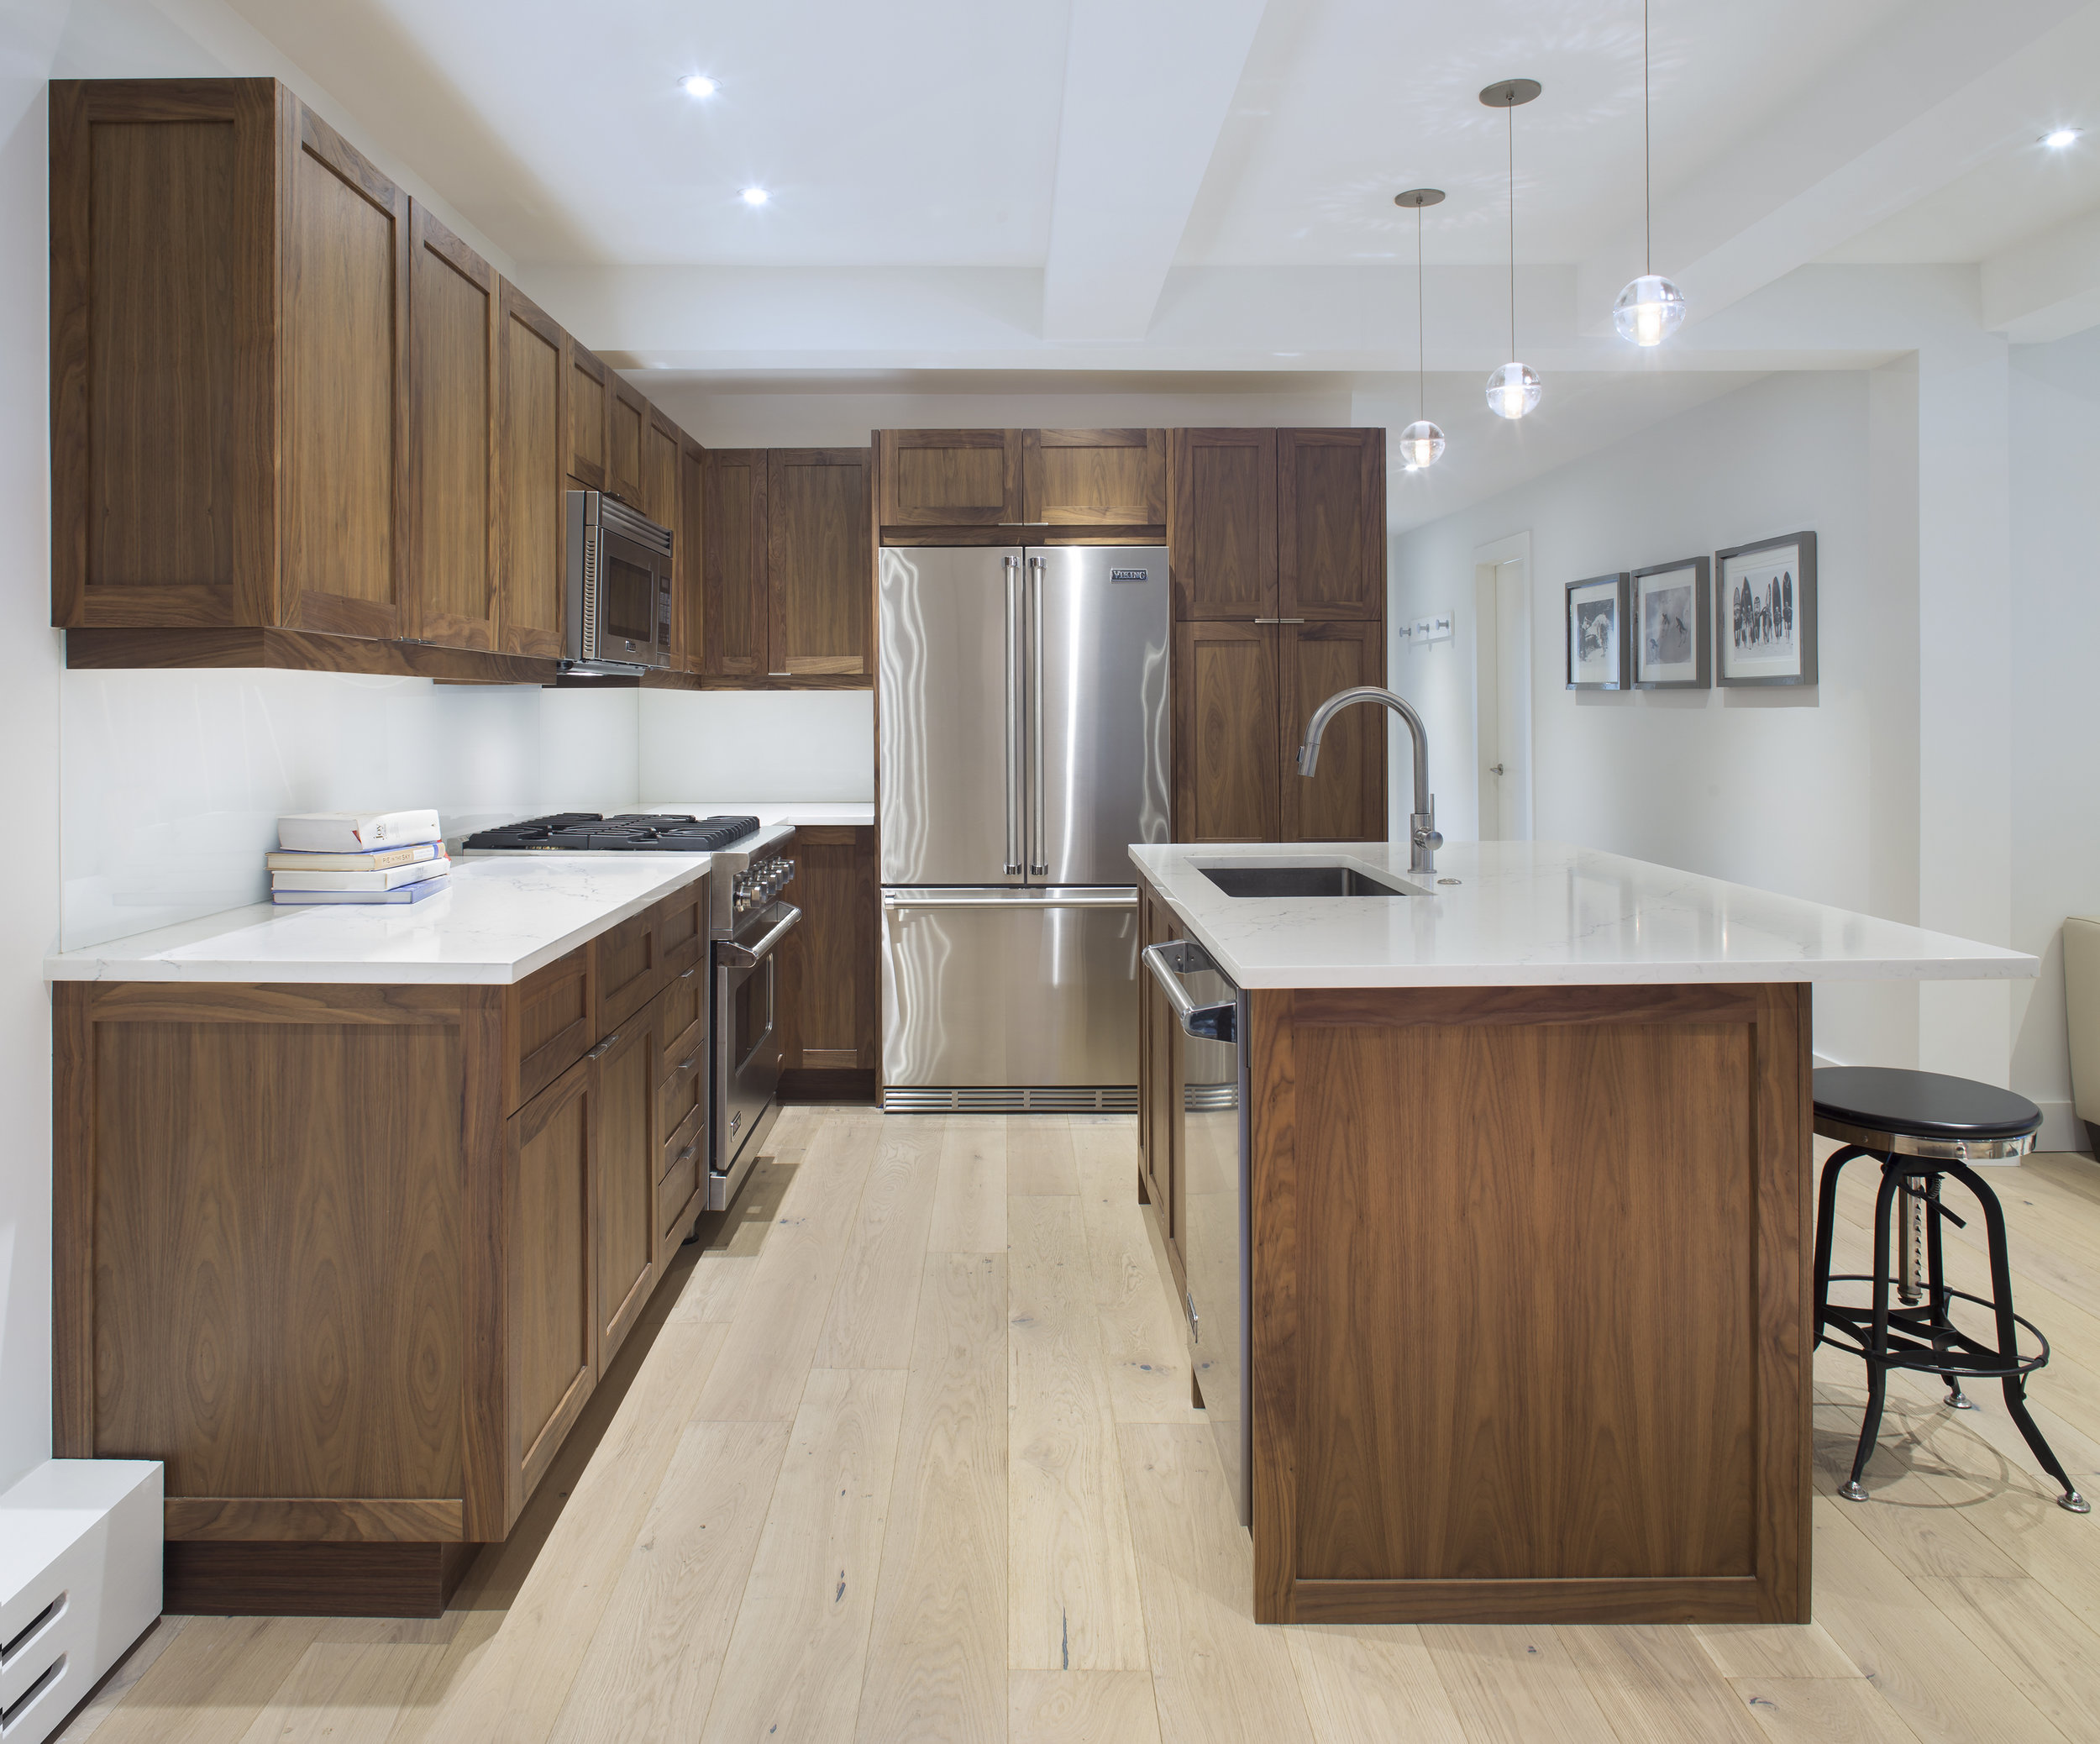 Custom Kitchen Design and Fabrication - A timeless and clean design featuring walnut shaker doors and panels, Viking appliances and a simple aesthetic that maximizes the small space.